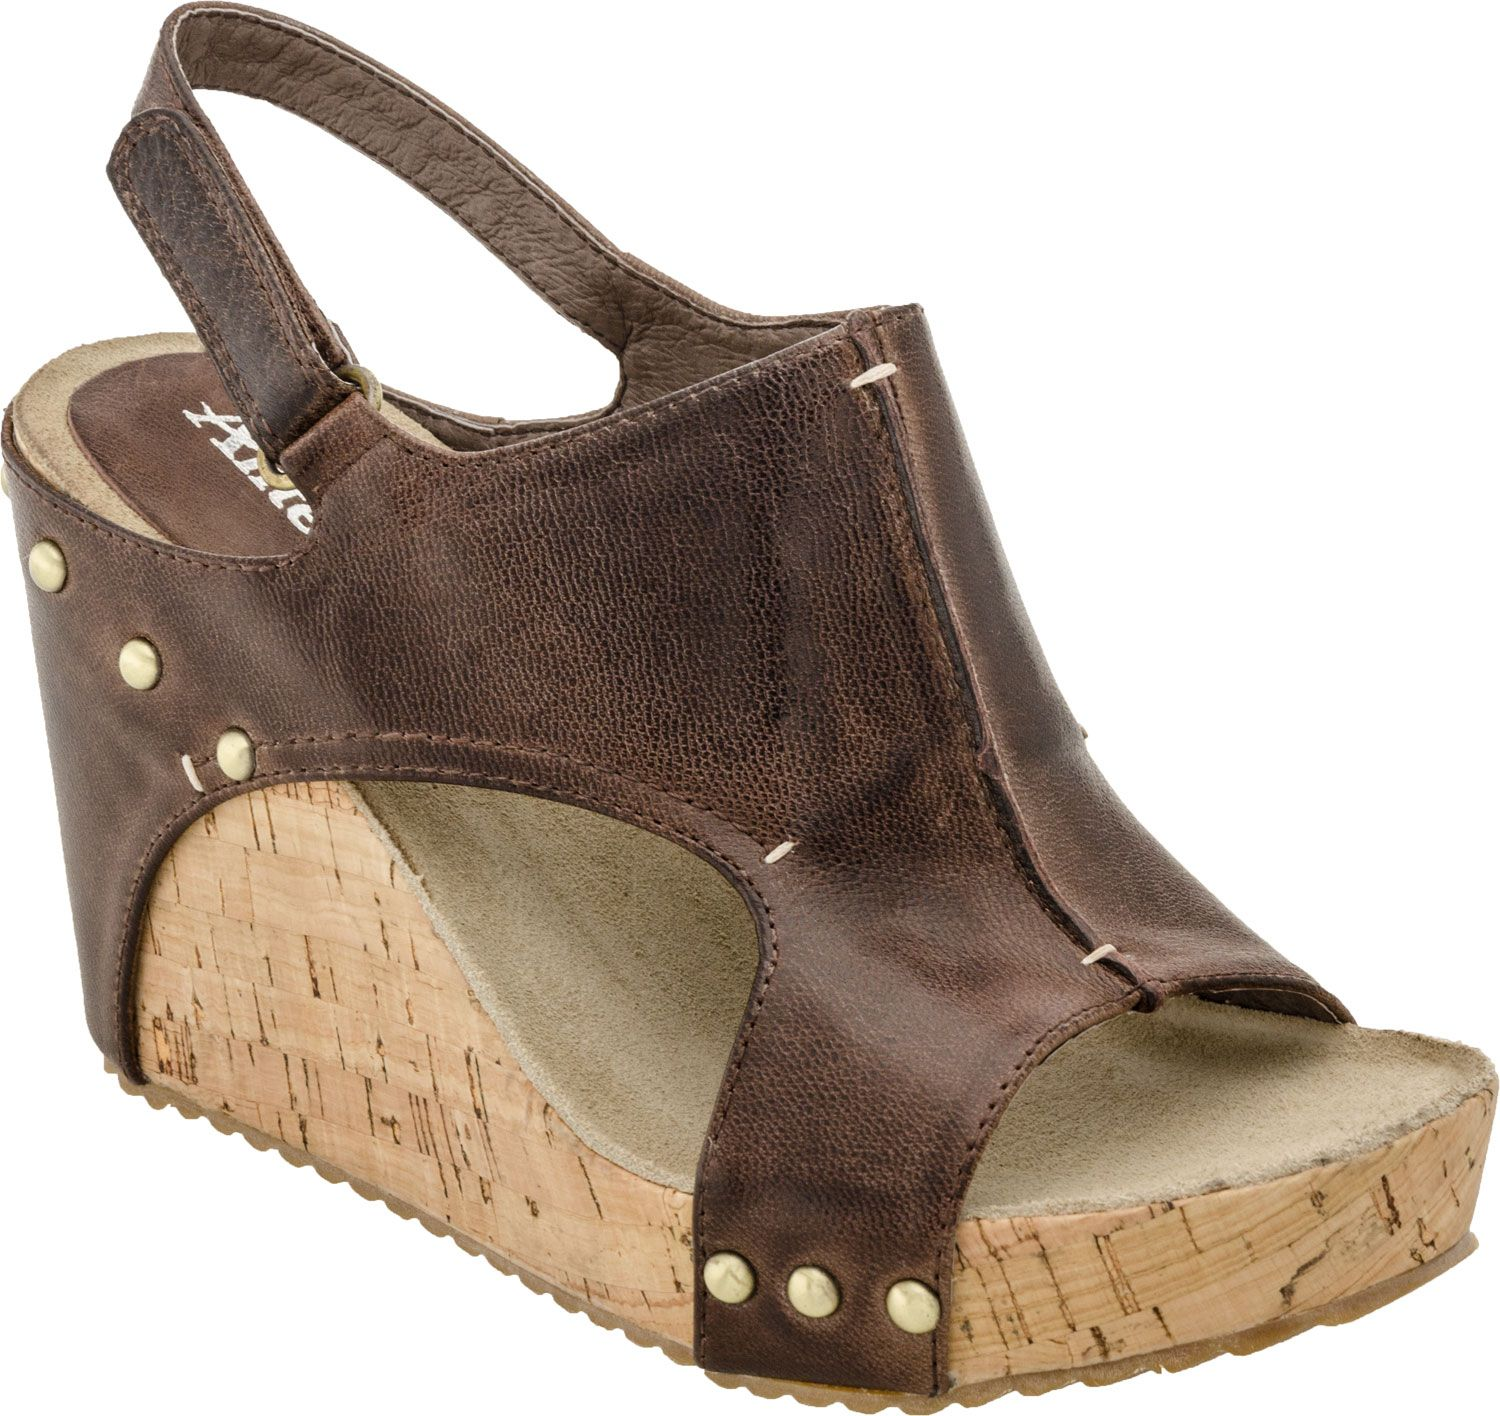 263ec73a3cf3 Antelope 724 Studded Cork Wedge women s sandals (Coffee).. My Next purchase  from The Willow Tree!